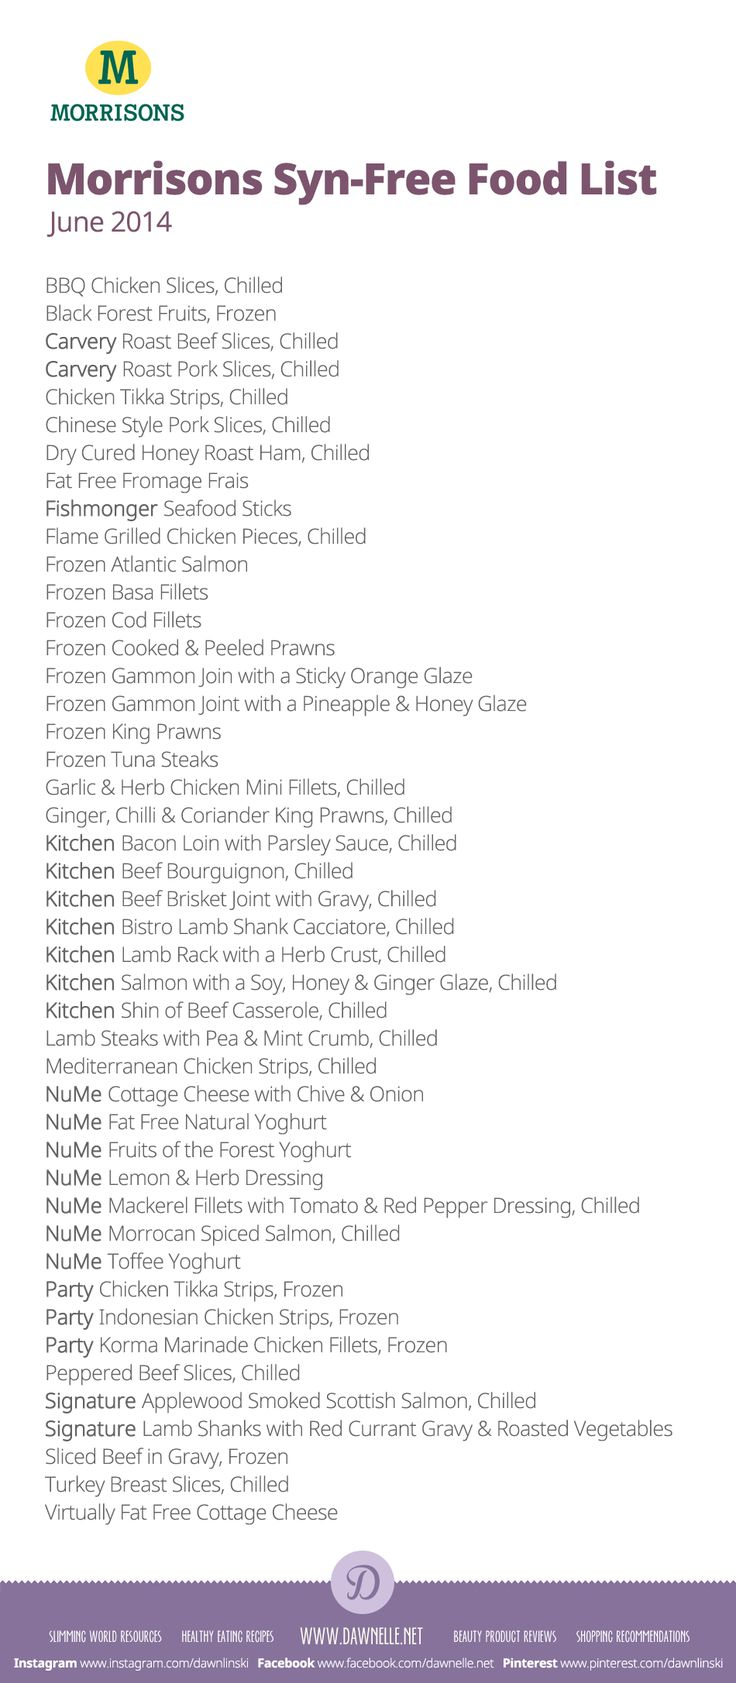 #Morrisons Syn-Free Shopping List on the #SlimmingWorld #ExtraEasy plan - June 2014